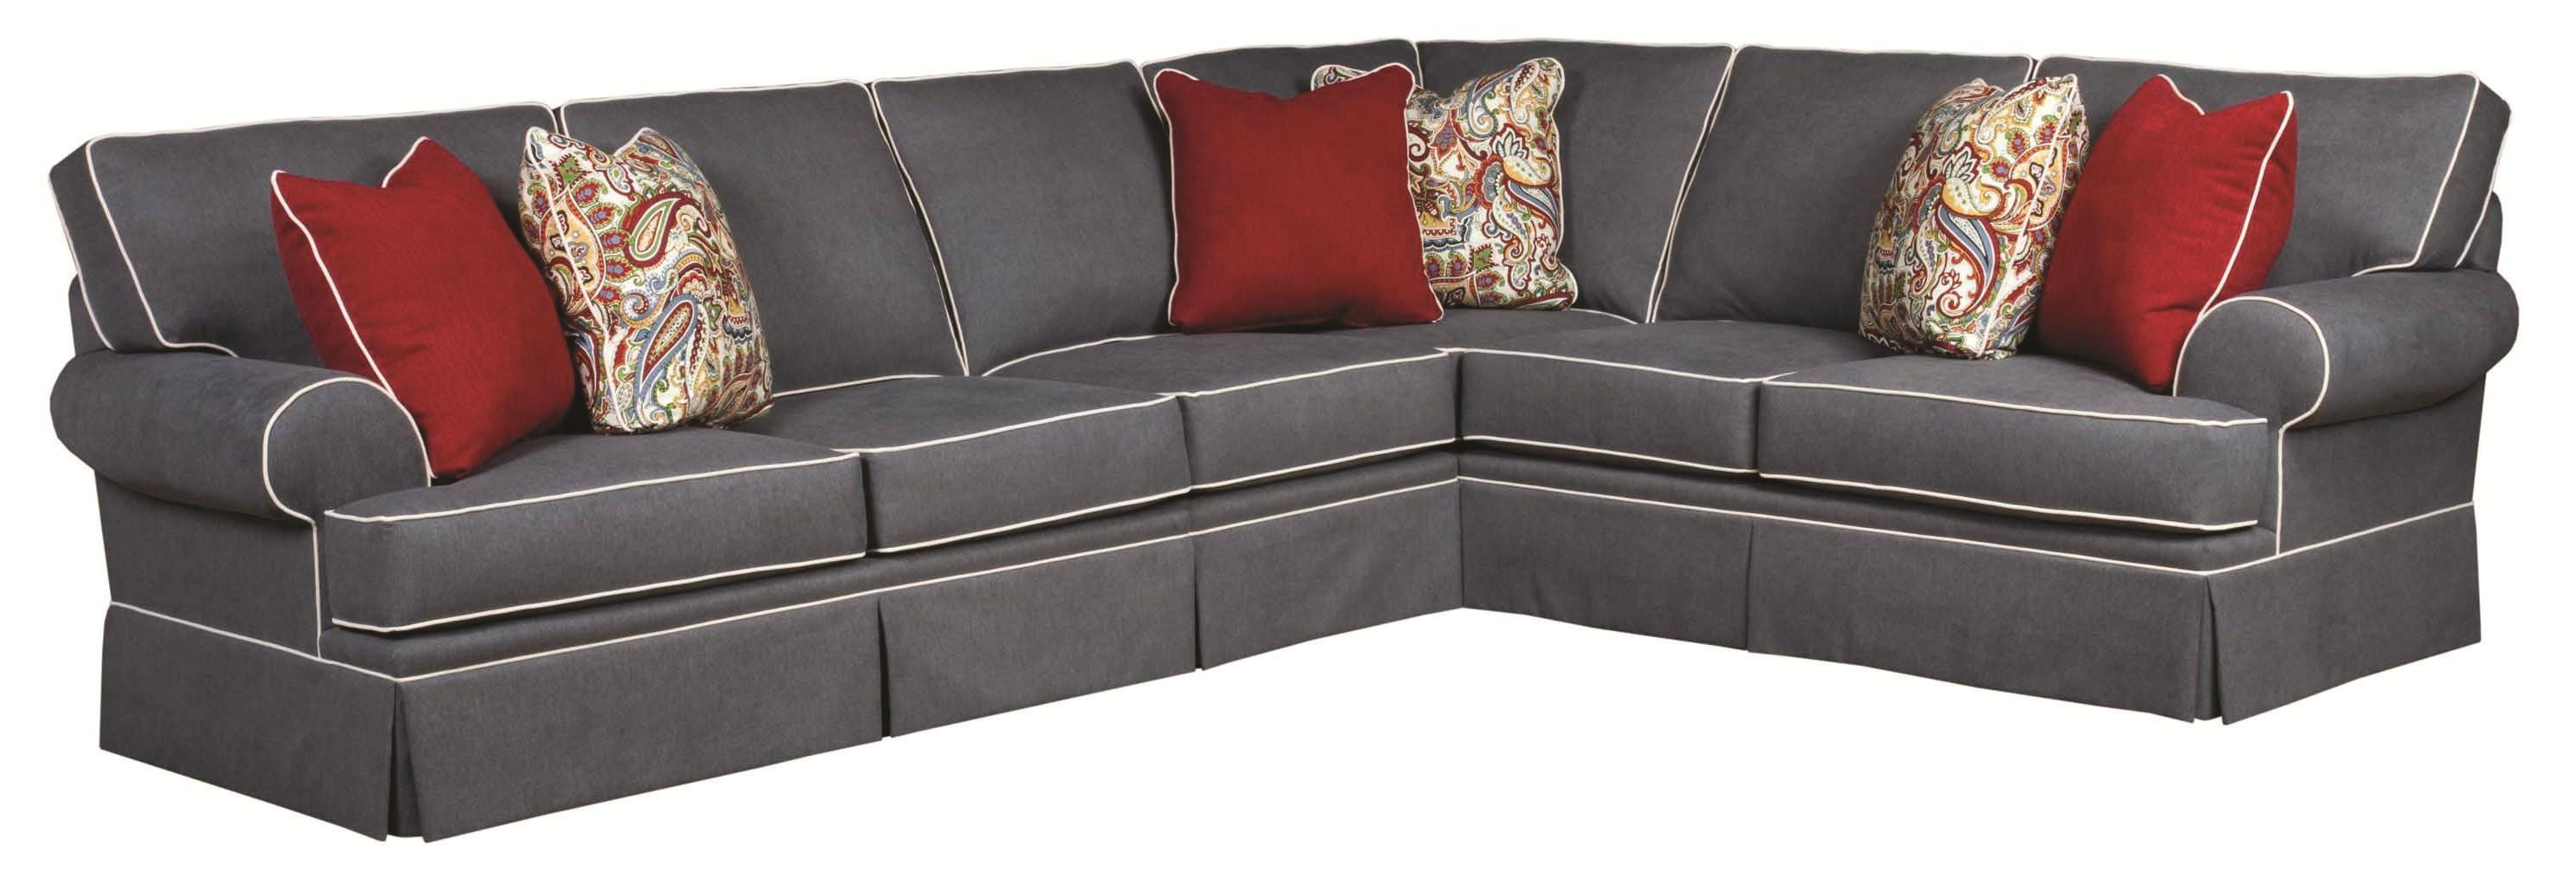 Broyhill Furniture Emily Traditional 3 Piece Sectional Sofa With Inside Broyhill Sectional Sofas (View 3 of 15)